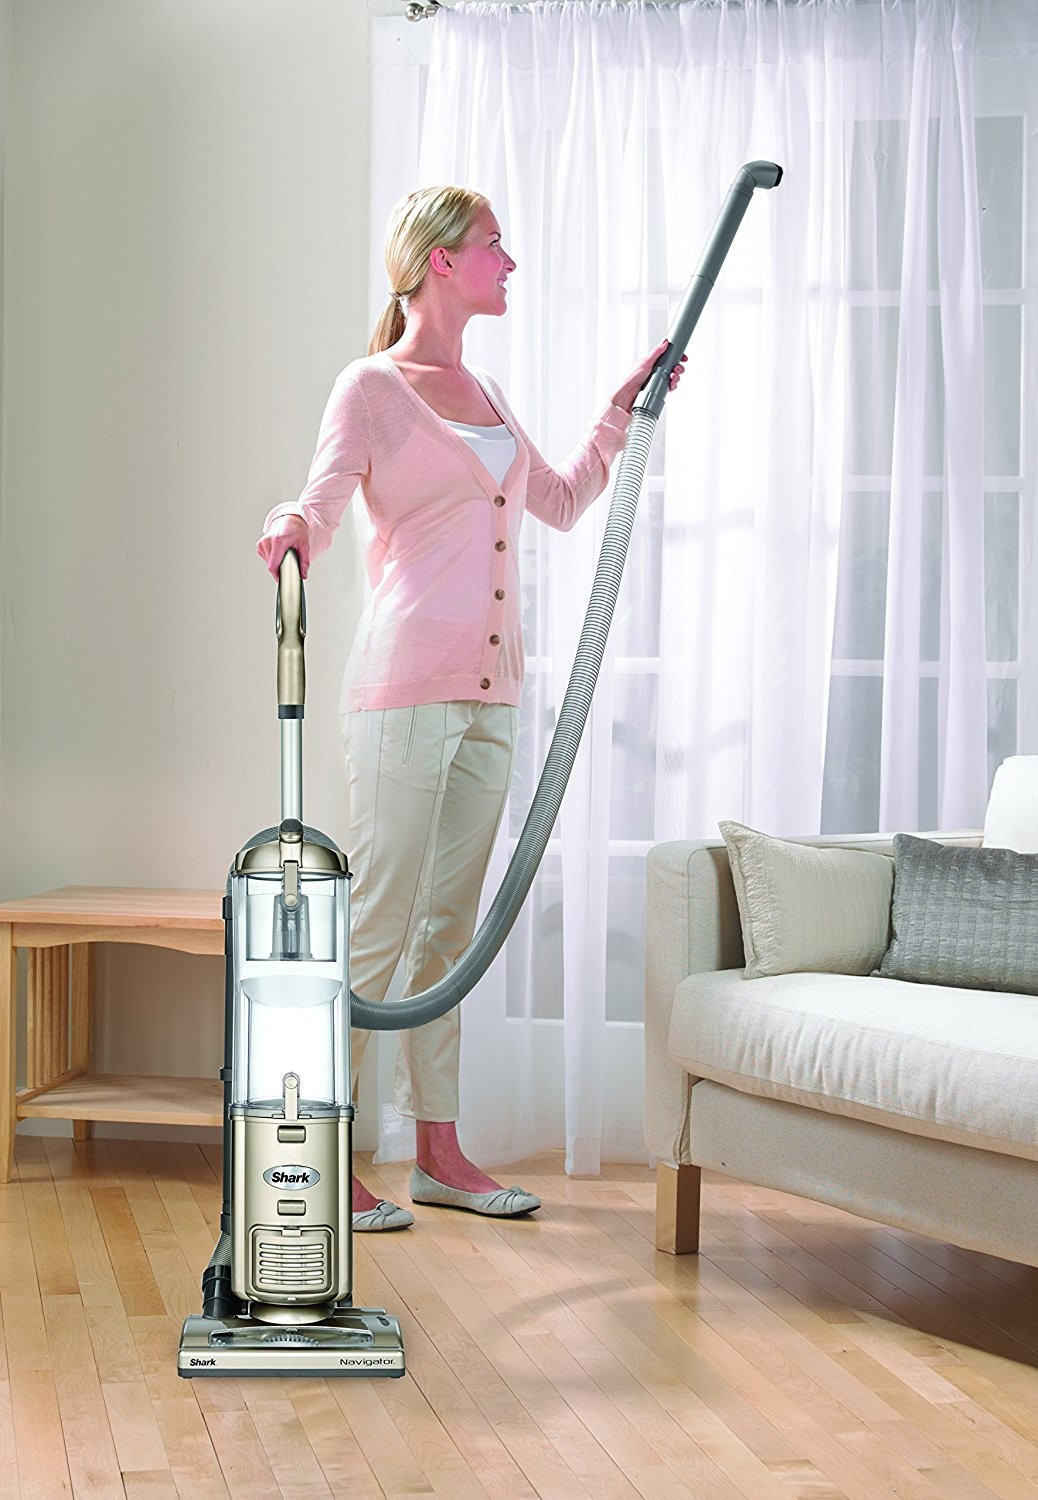 best vacuum for pet hair and hardwood floors and carpet of 19 inspirational best vacuum for hardwood floors and pet hair for best vacuum for hardwood floors and pet hair fresh amazon shark navigator deluxe upright corded bagless